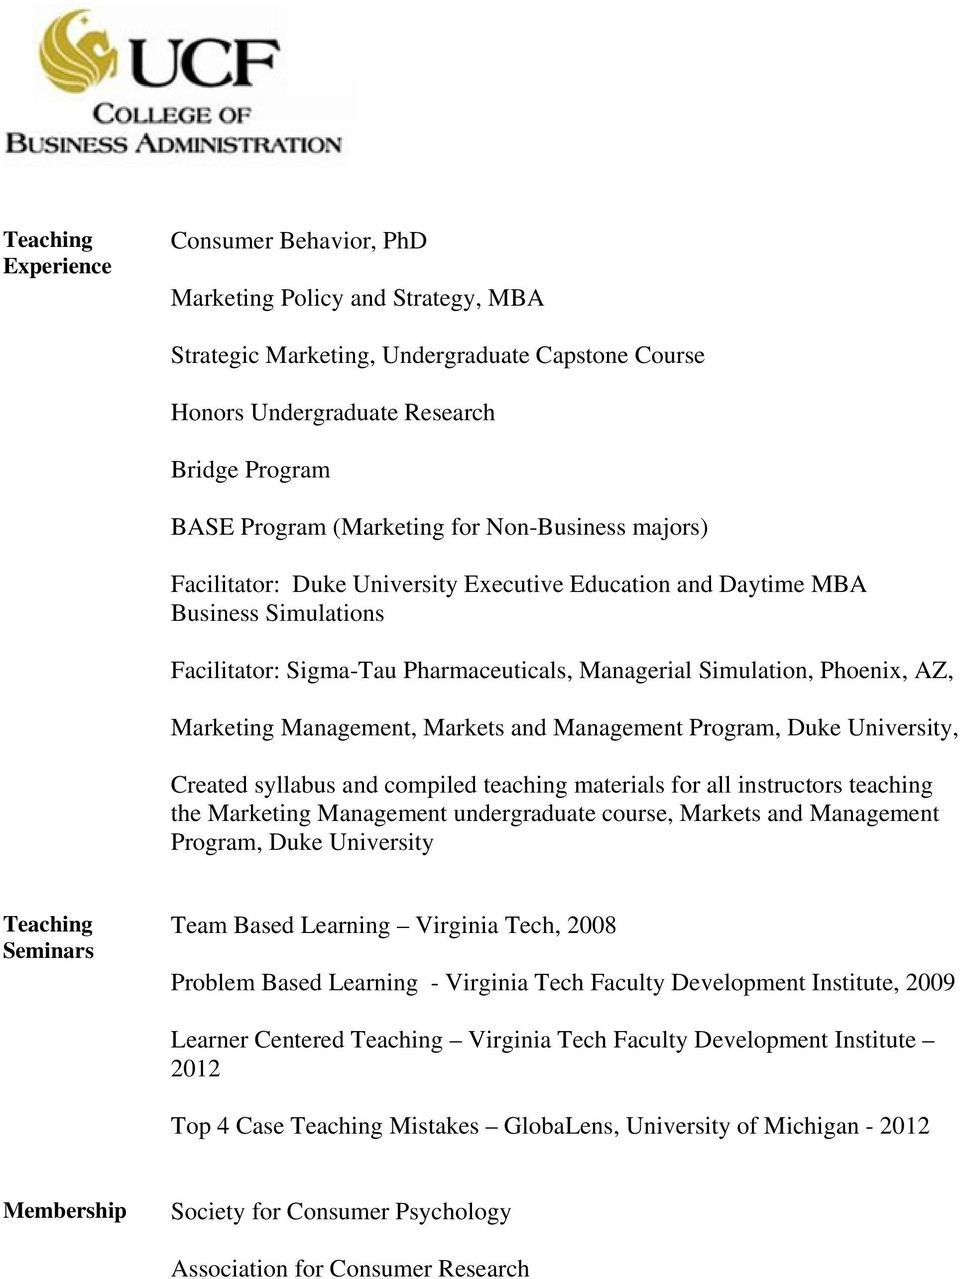 Management, Markets and Management Program, Duke University, Created syllabus and compiled teaching materials for all instructors teaching the Marketing Management undergraduate course, Markets and